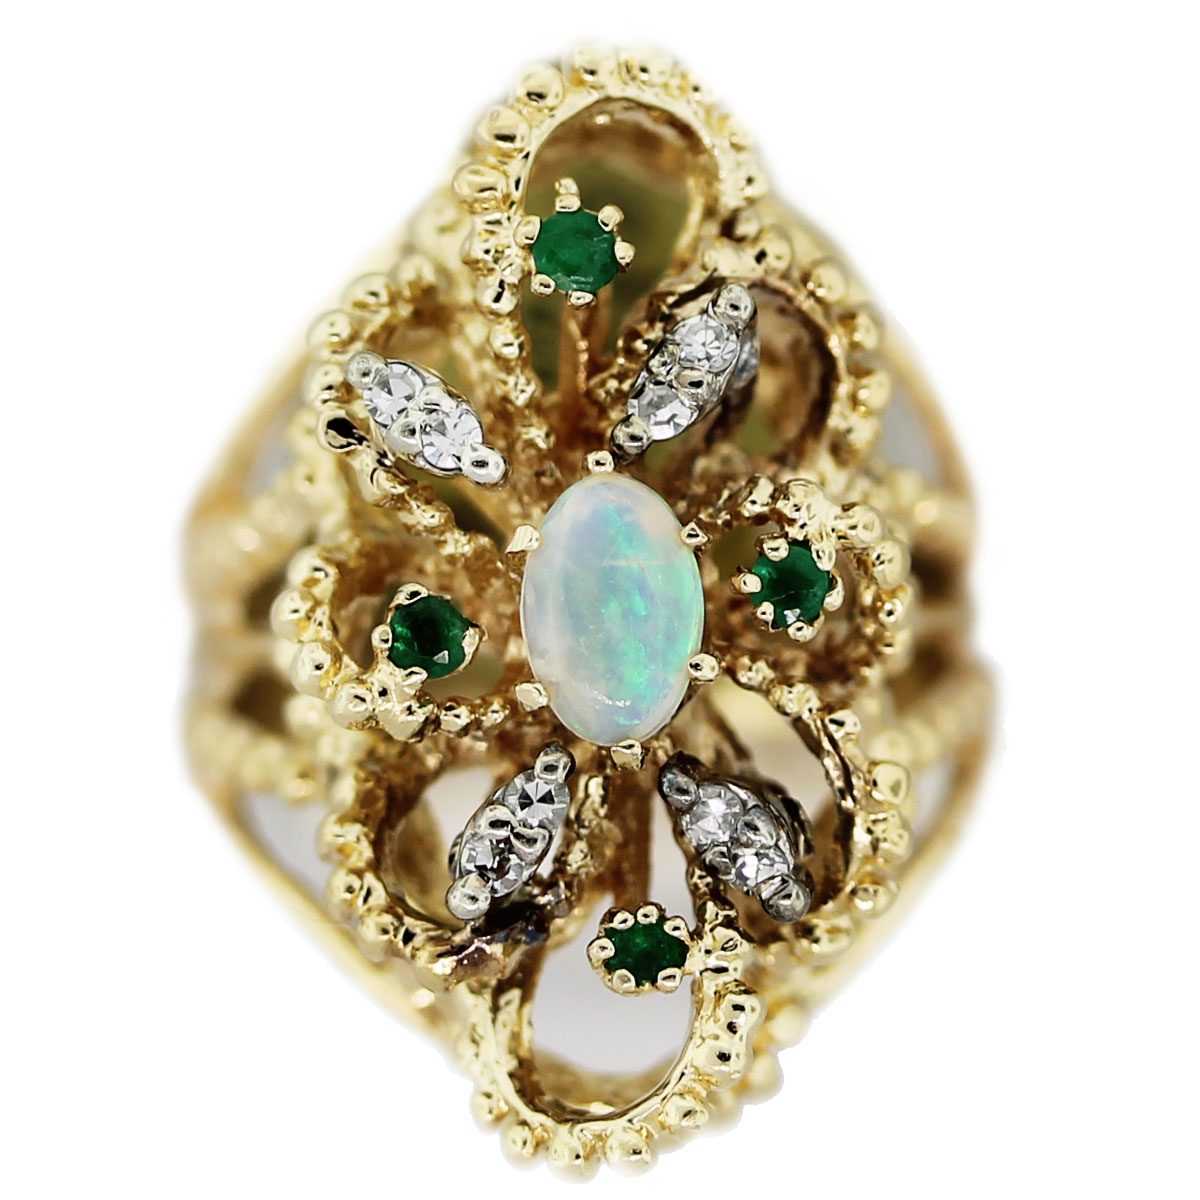 Vintage 14k Yellow Gold Jelly Opal, Single Cut Diamond, Emerald Ring